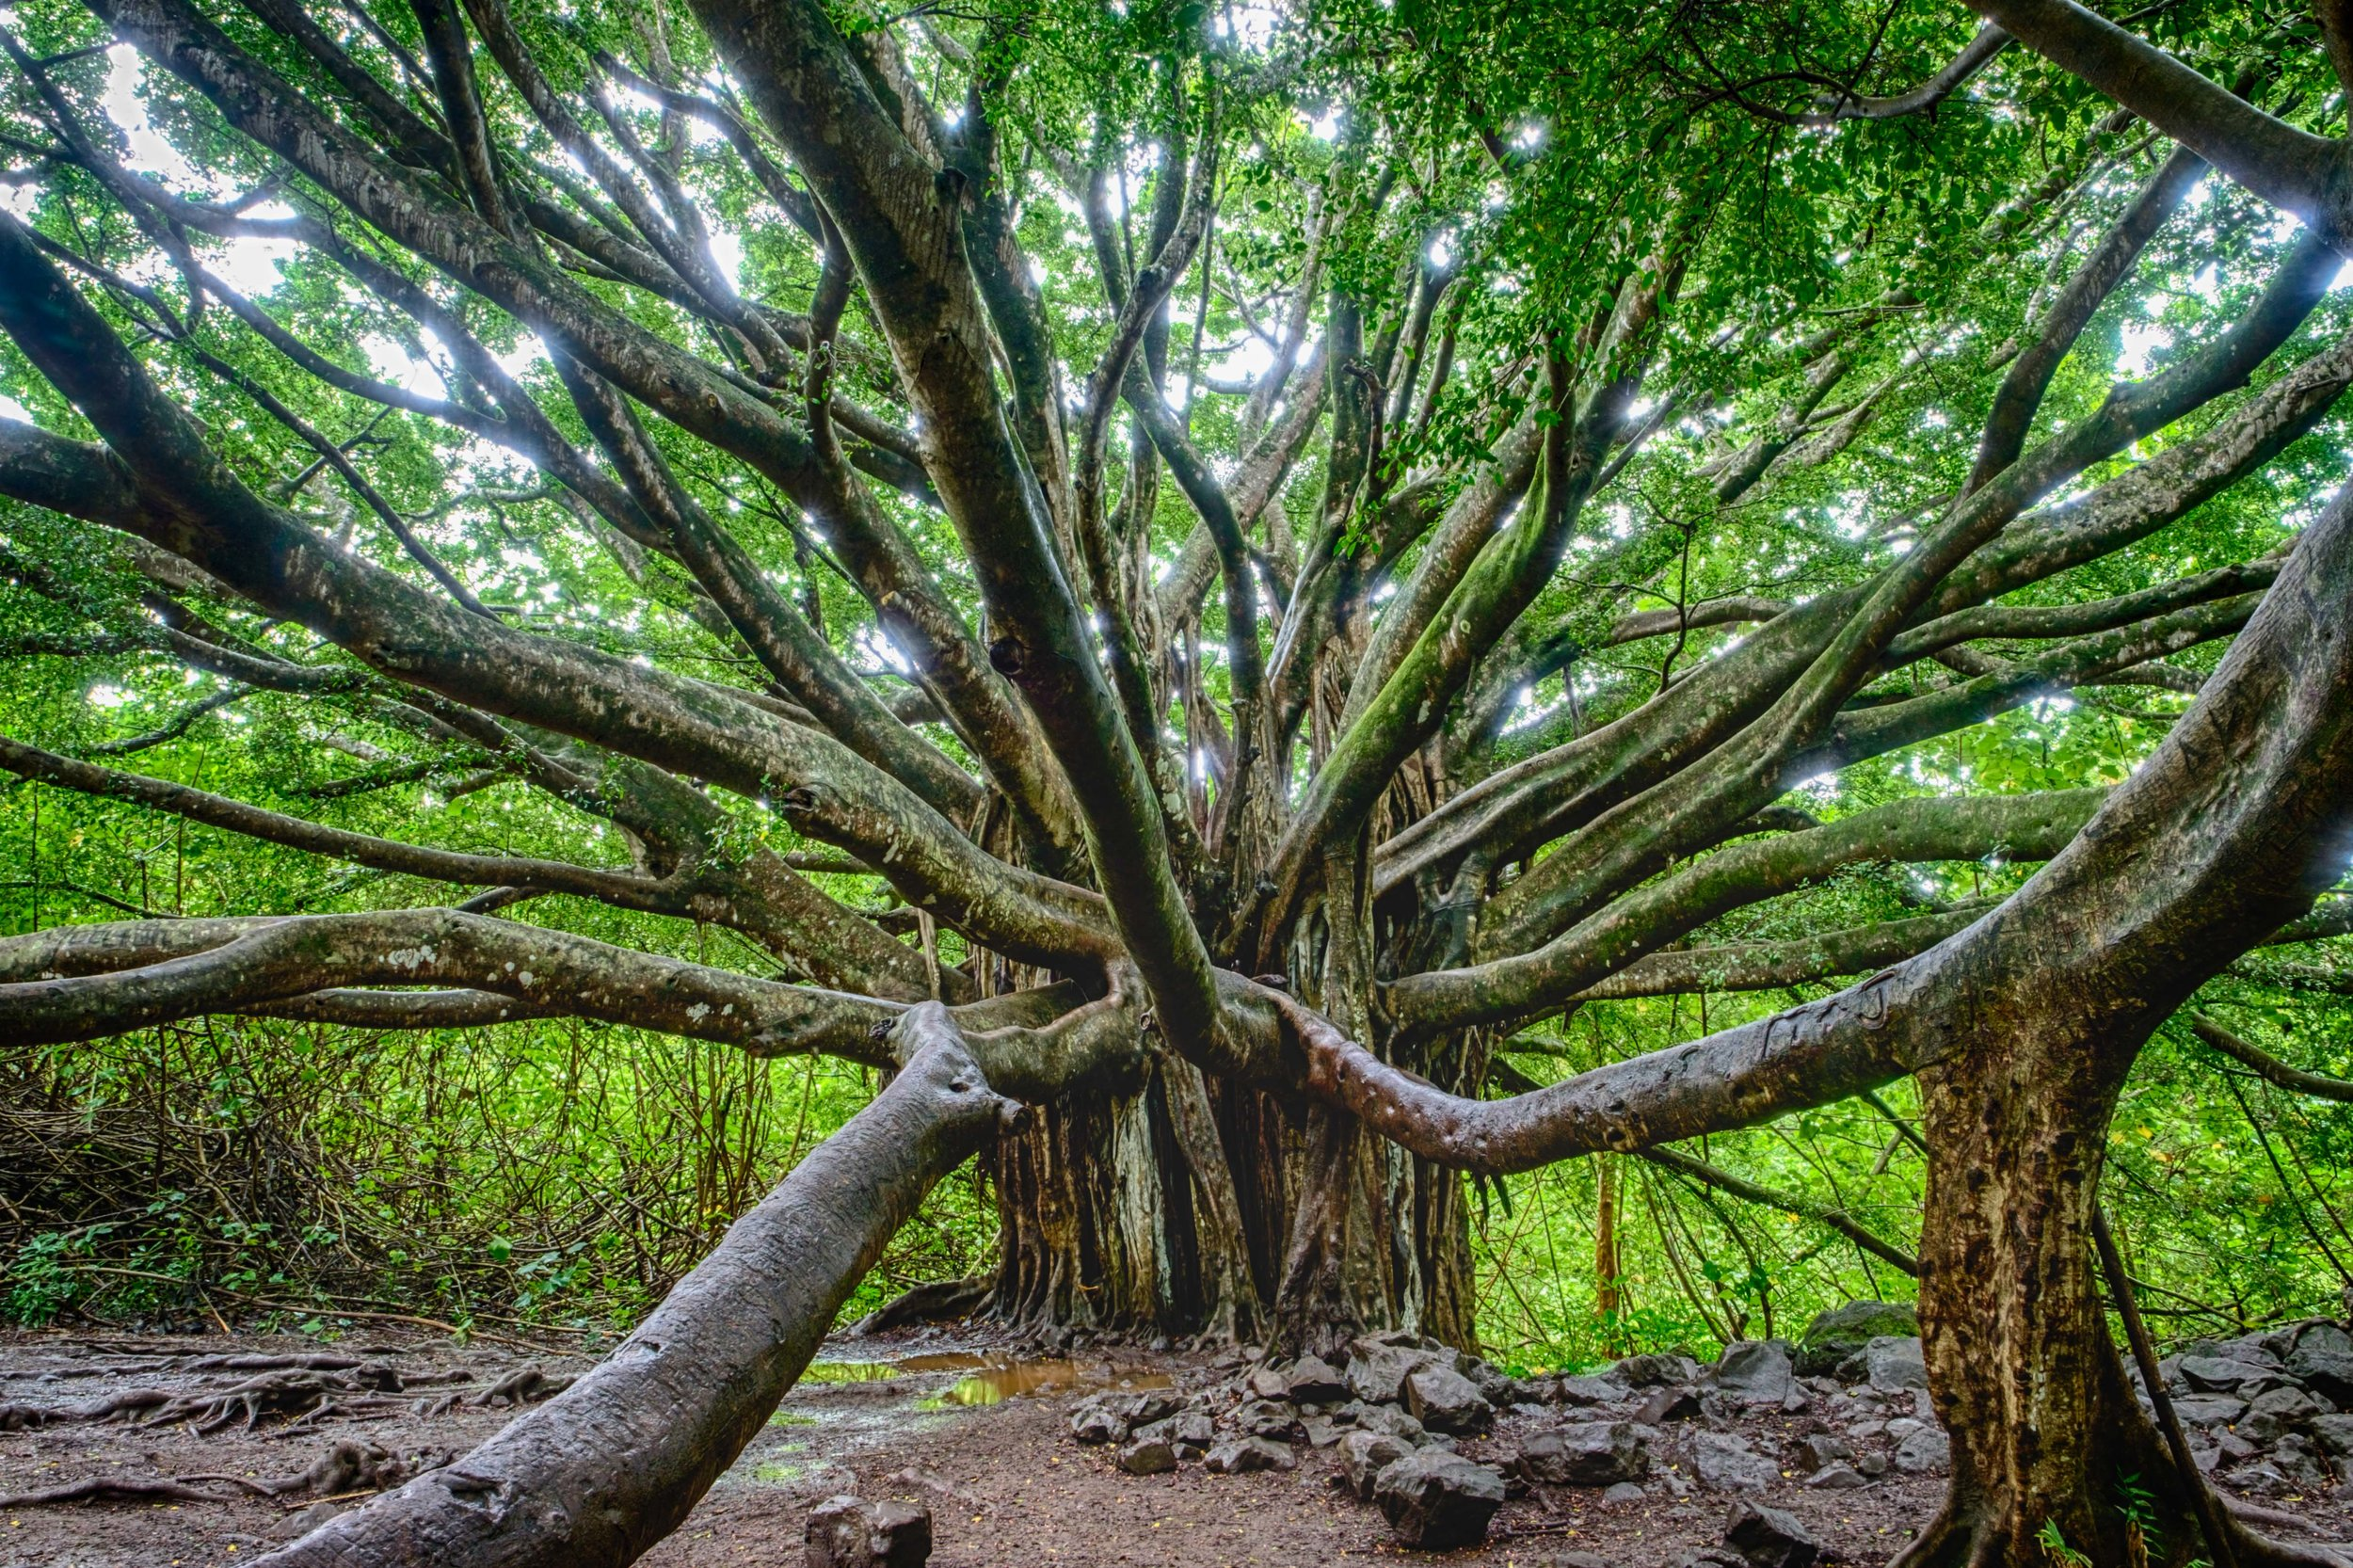 A fairytale Banyan Tree about a mile in on the Pipiwai Trail.